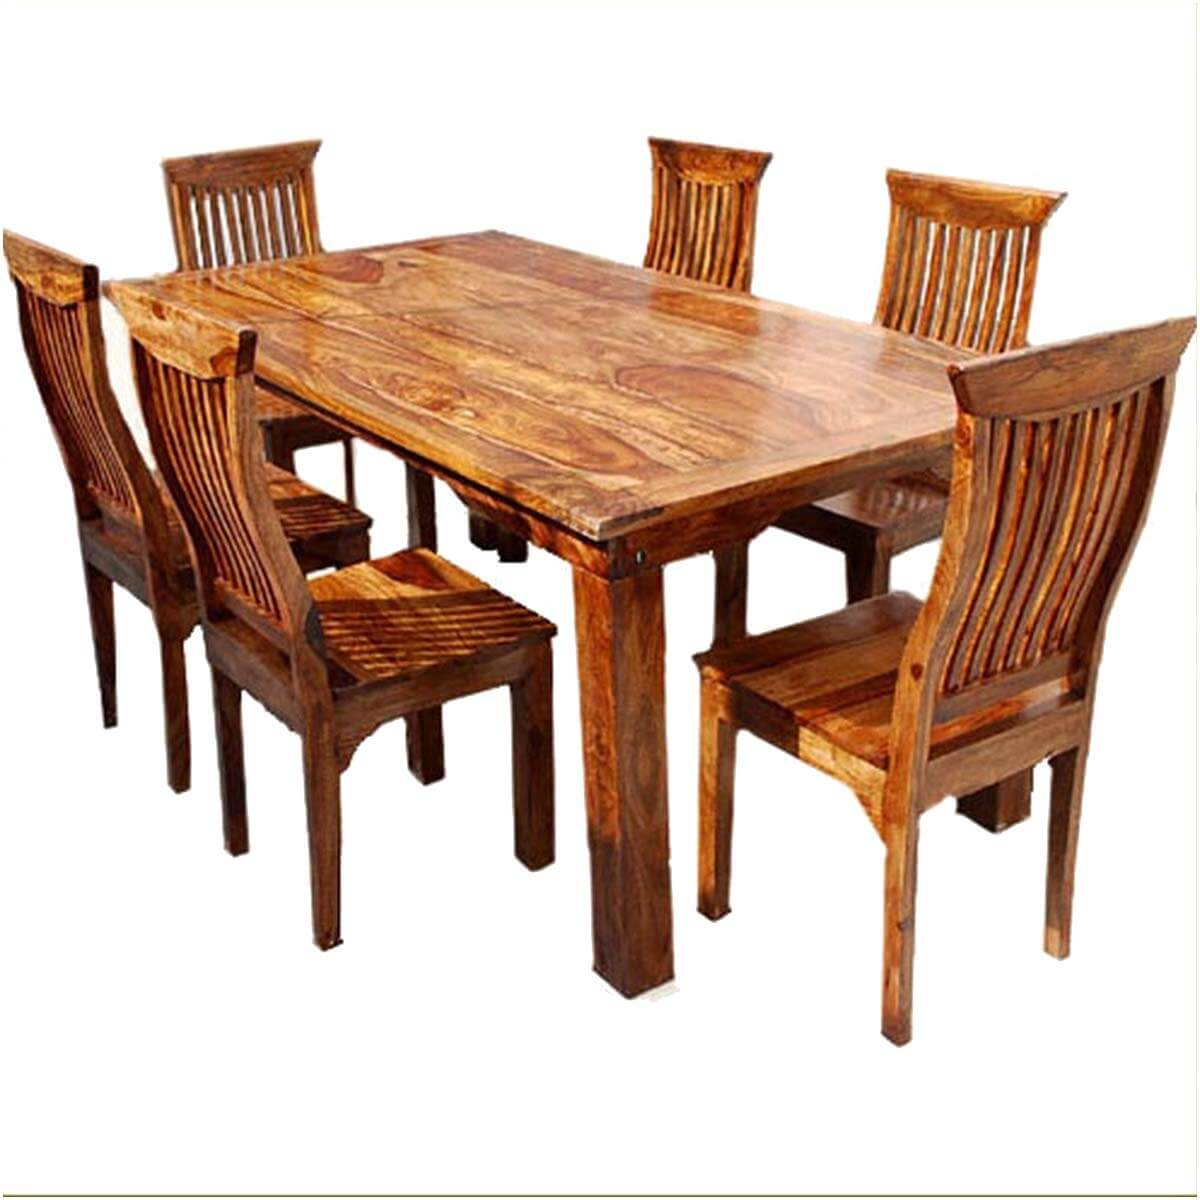 Dallas ranch solid wood rustic dining table chairs hutch set for Wood dining table decor